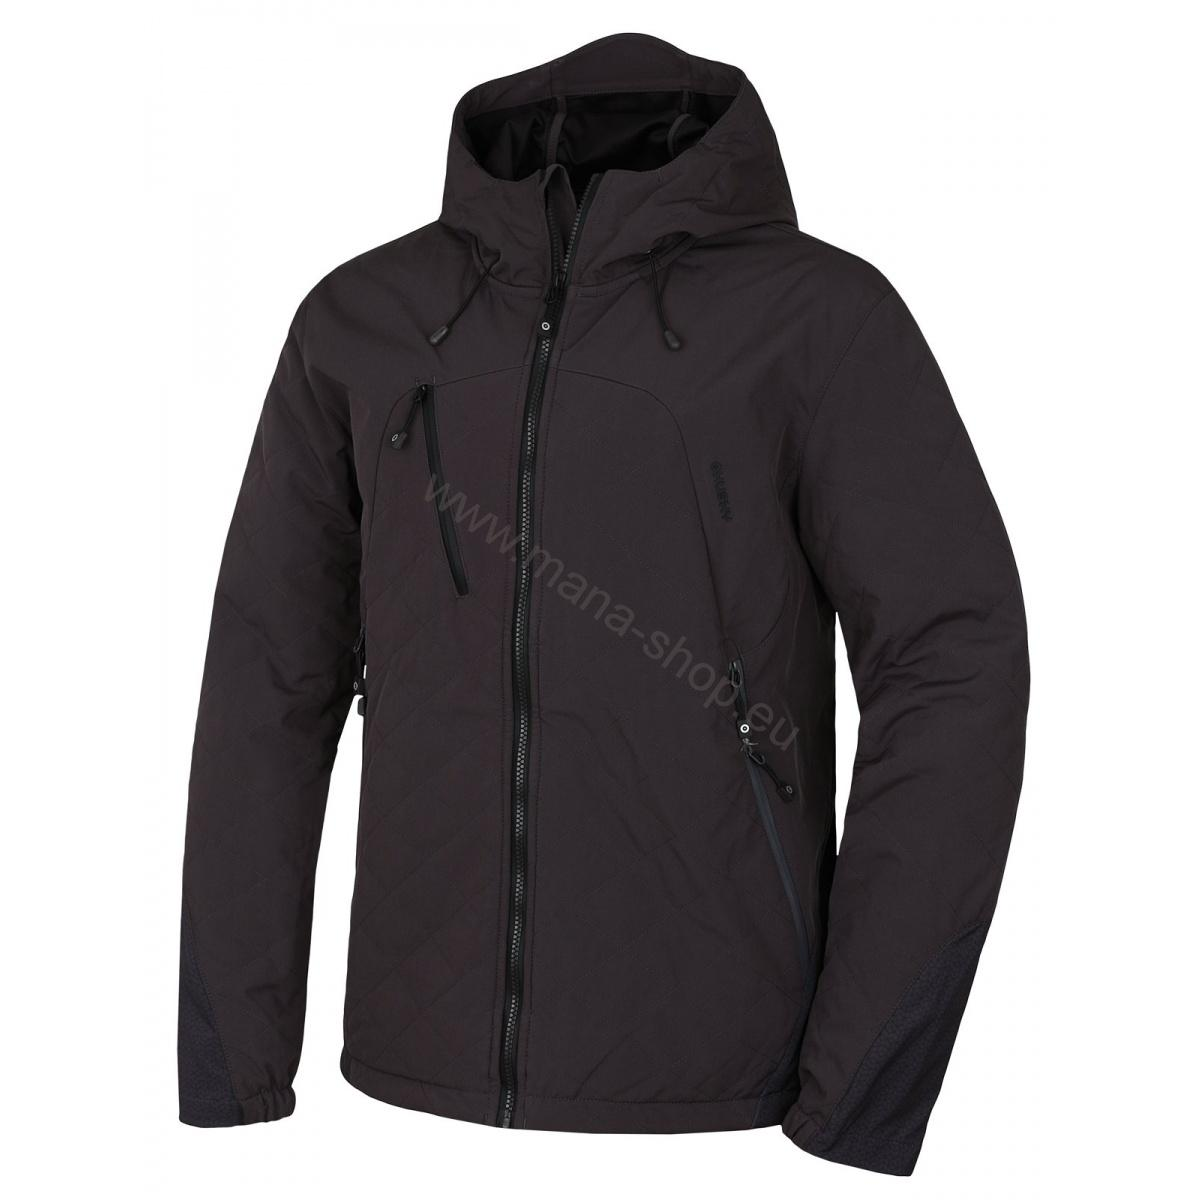 Herren Softshell Jacke SALEX NEW M grafit